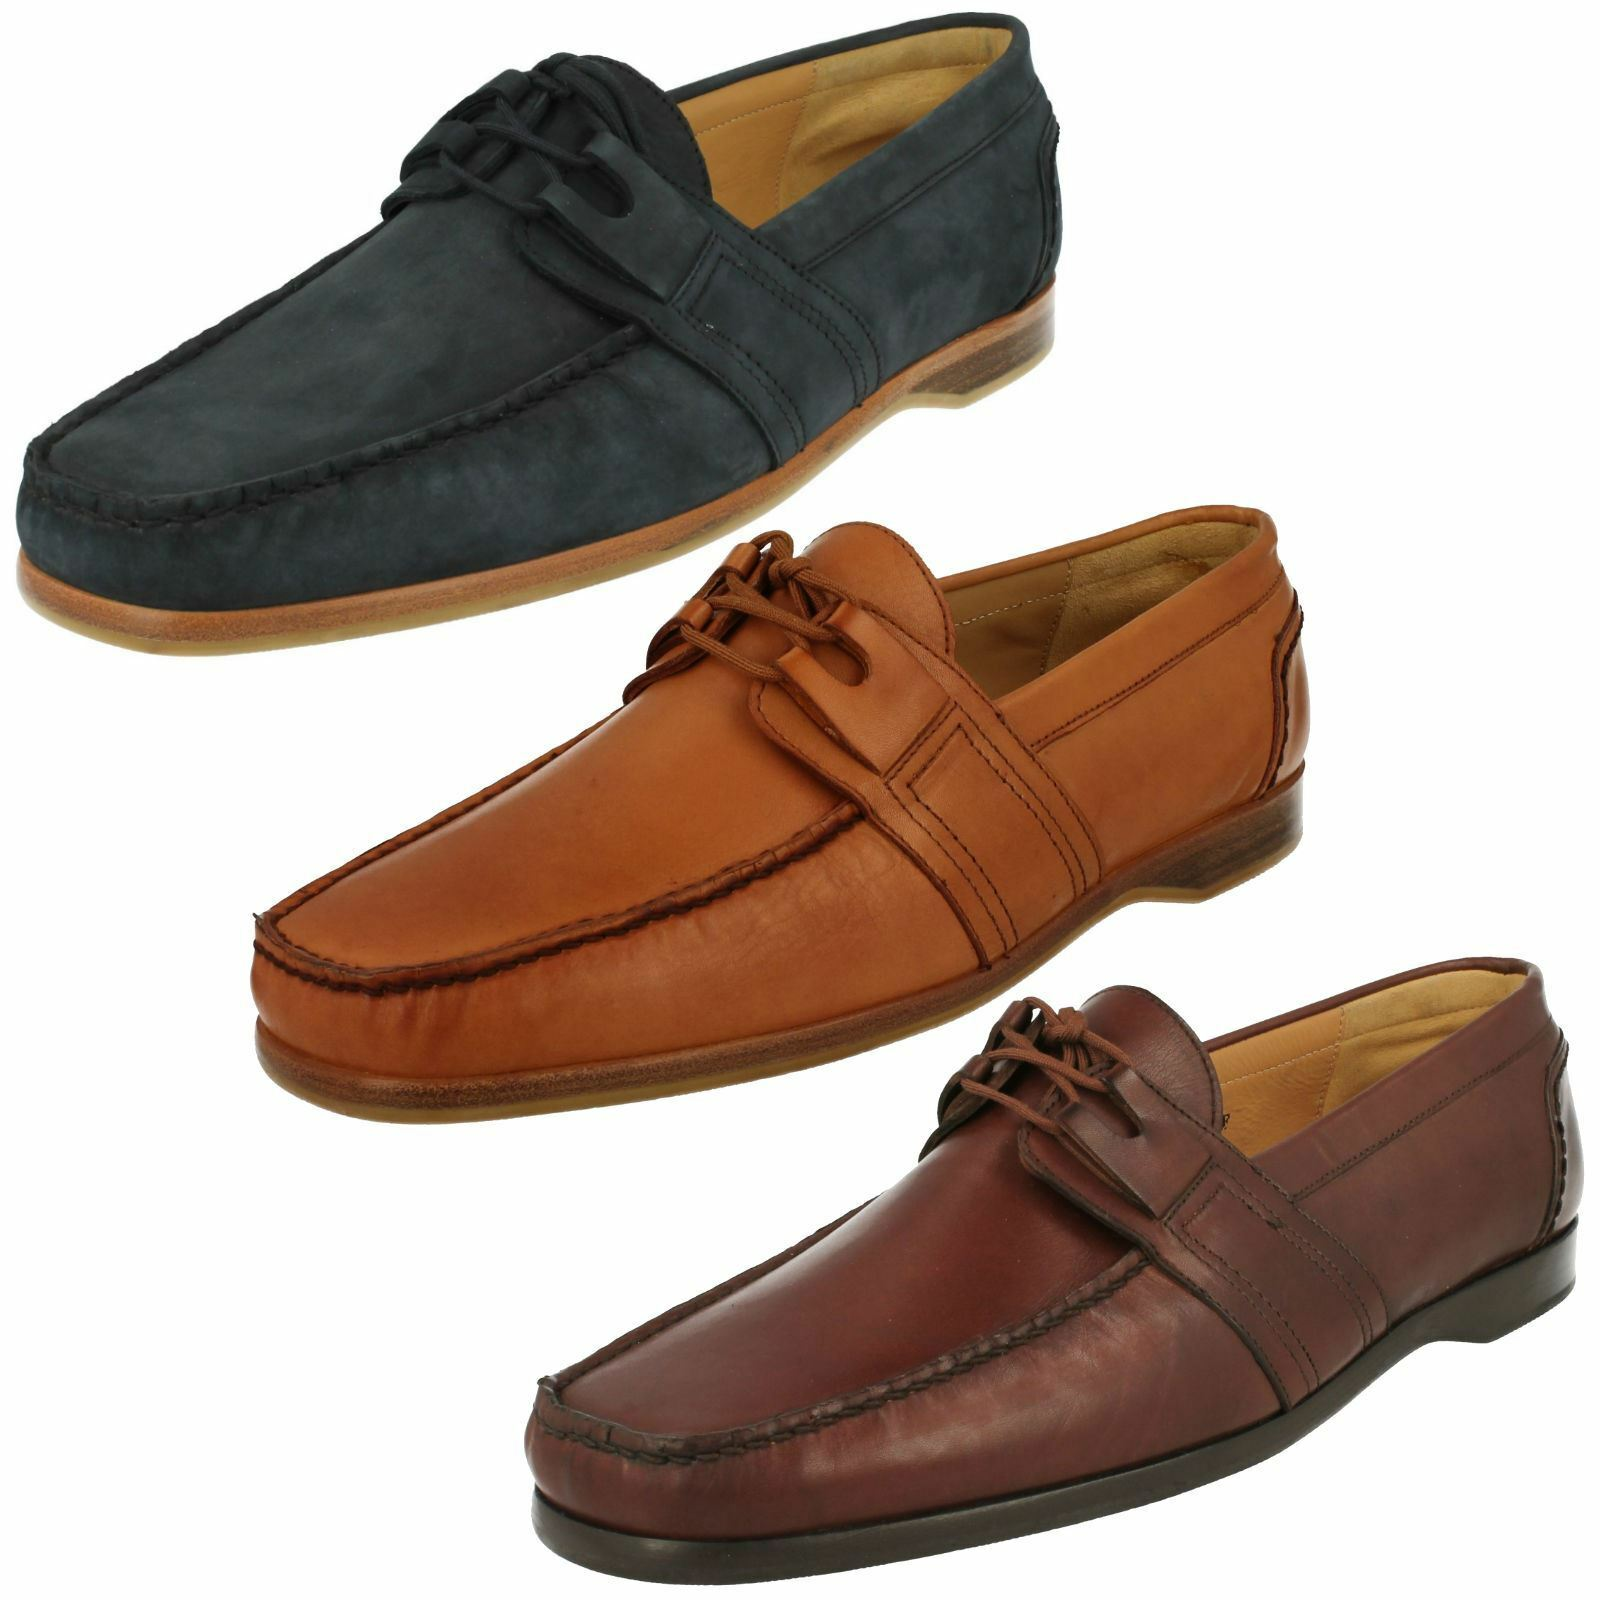 Grenson pour HOMME CASUAL MOCCASIN Chaussures Swansea